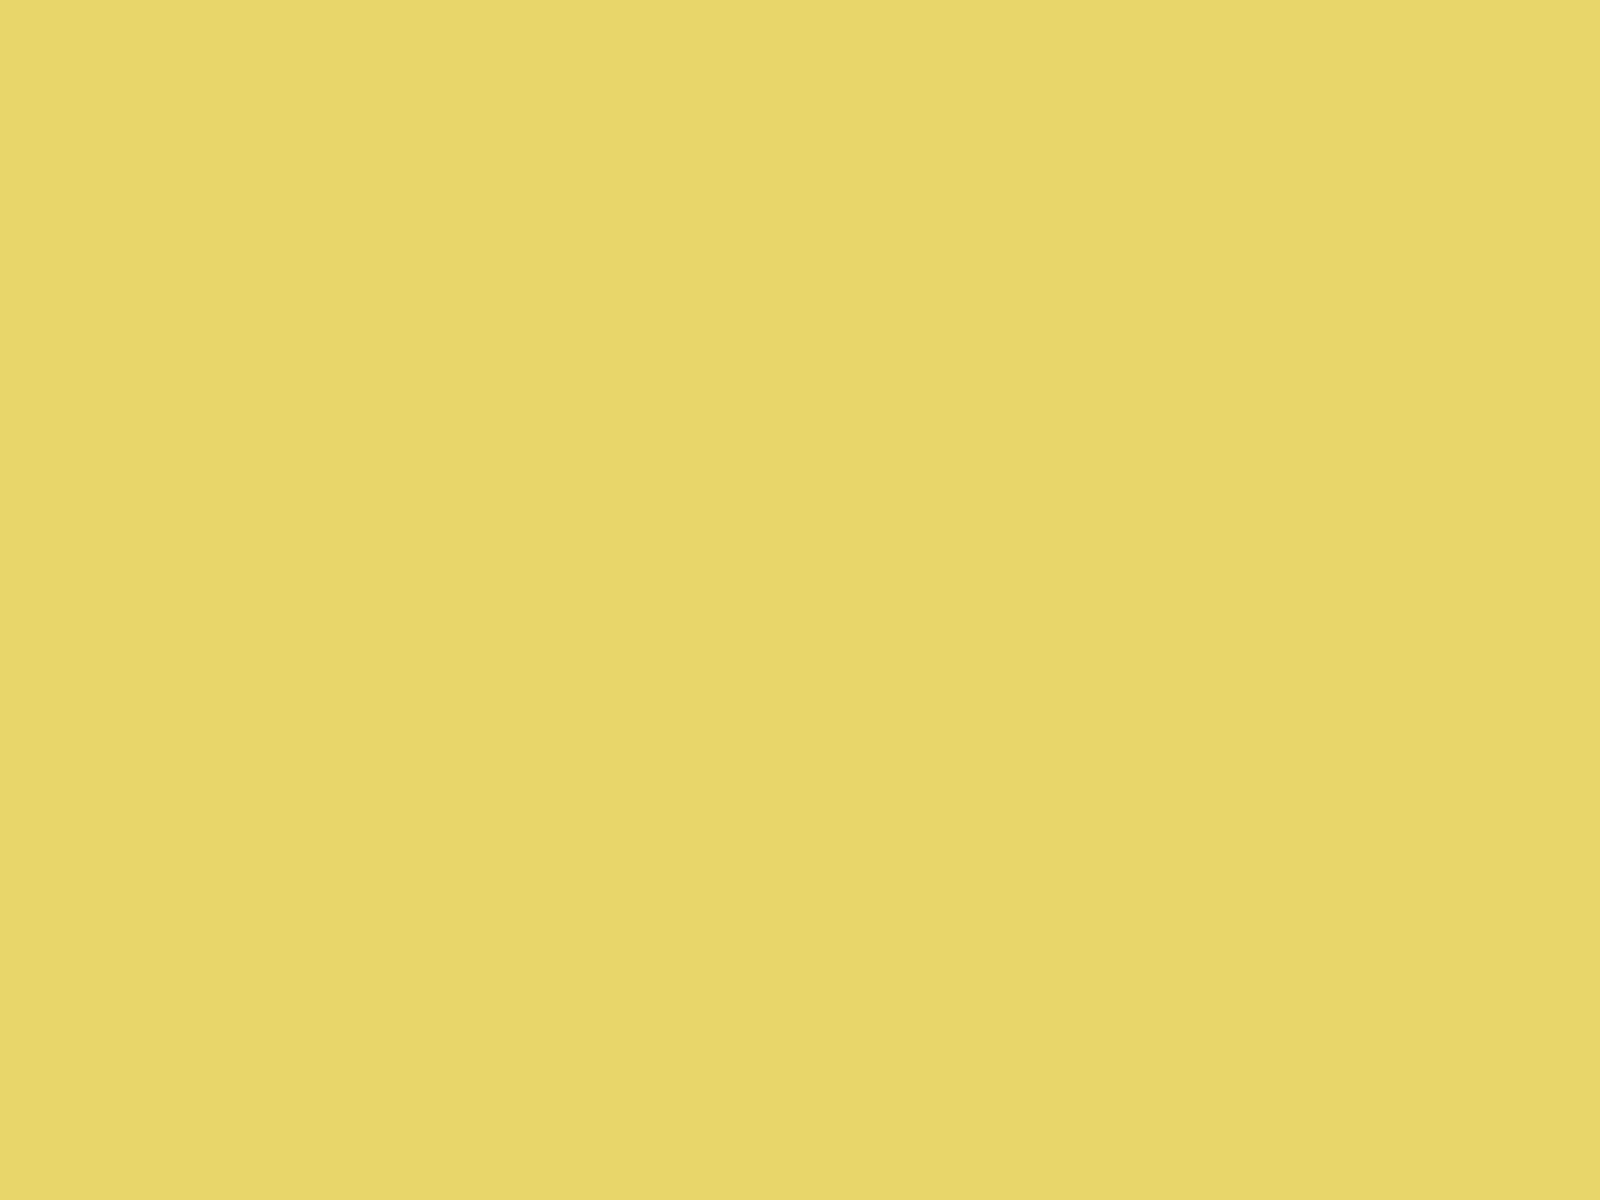 1600x1200 Arylide Yellow Solid Color Background